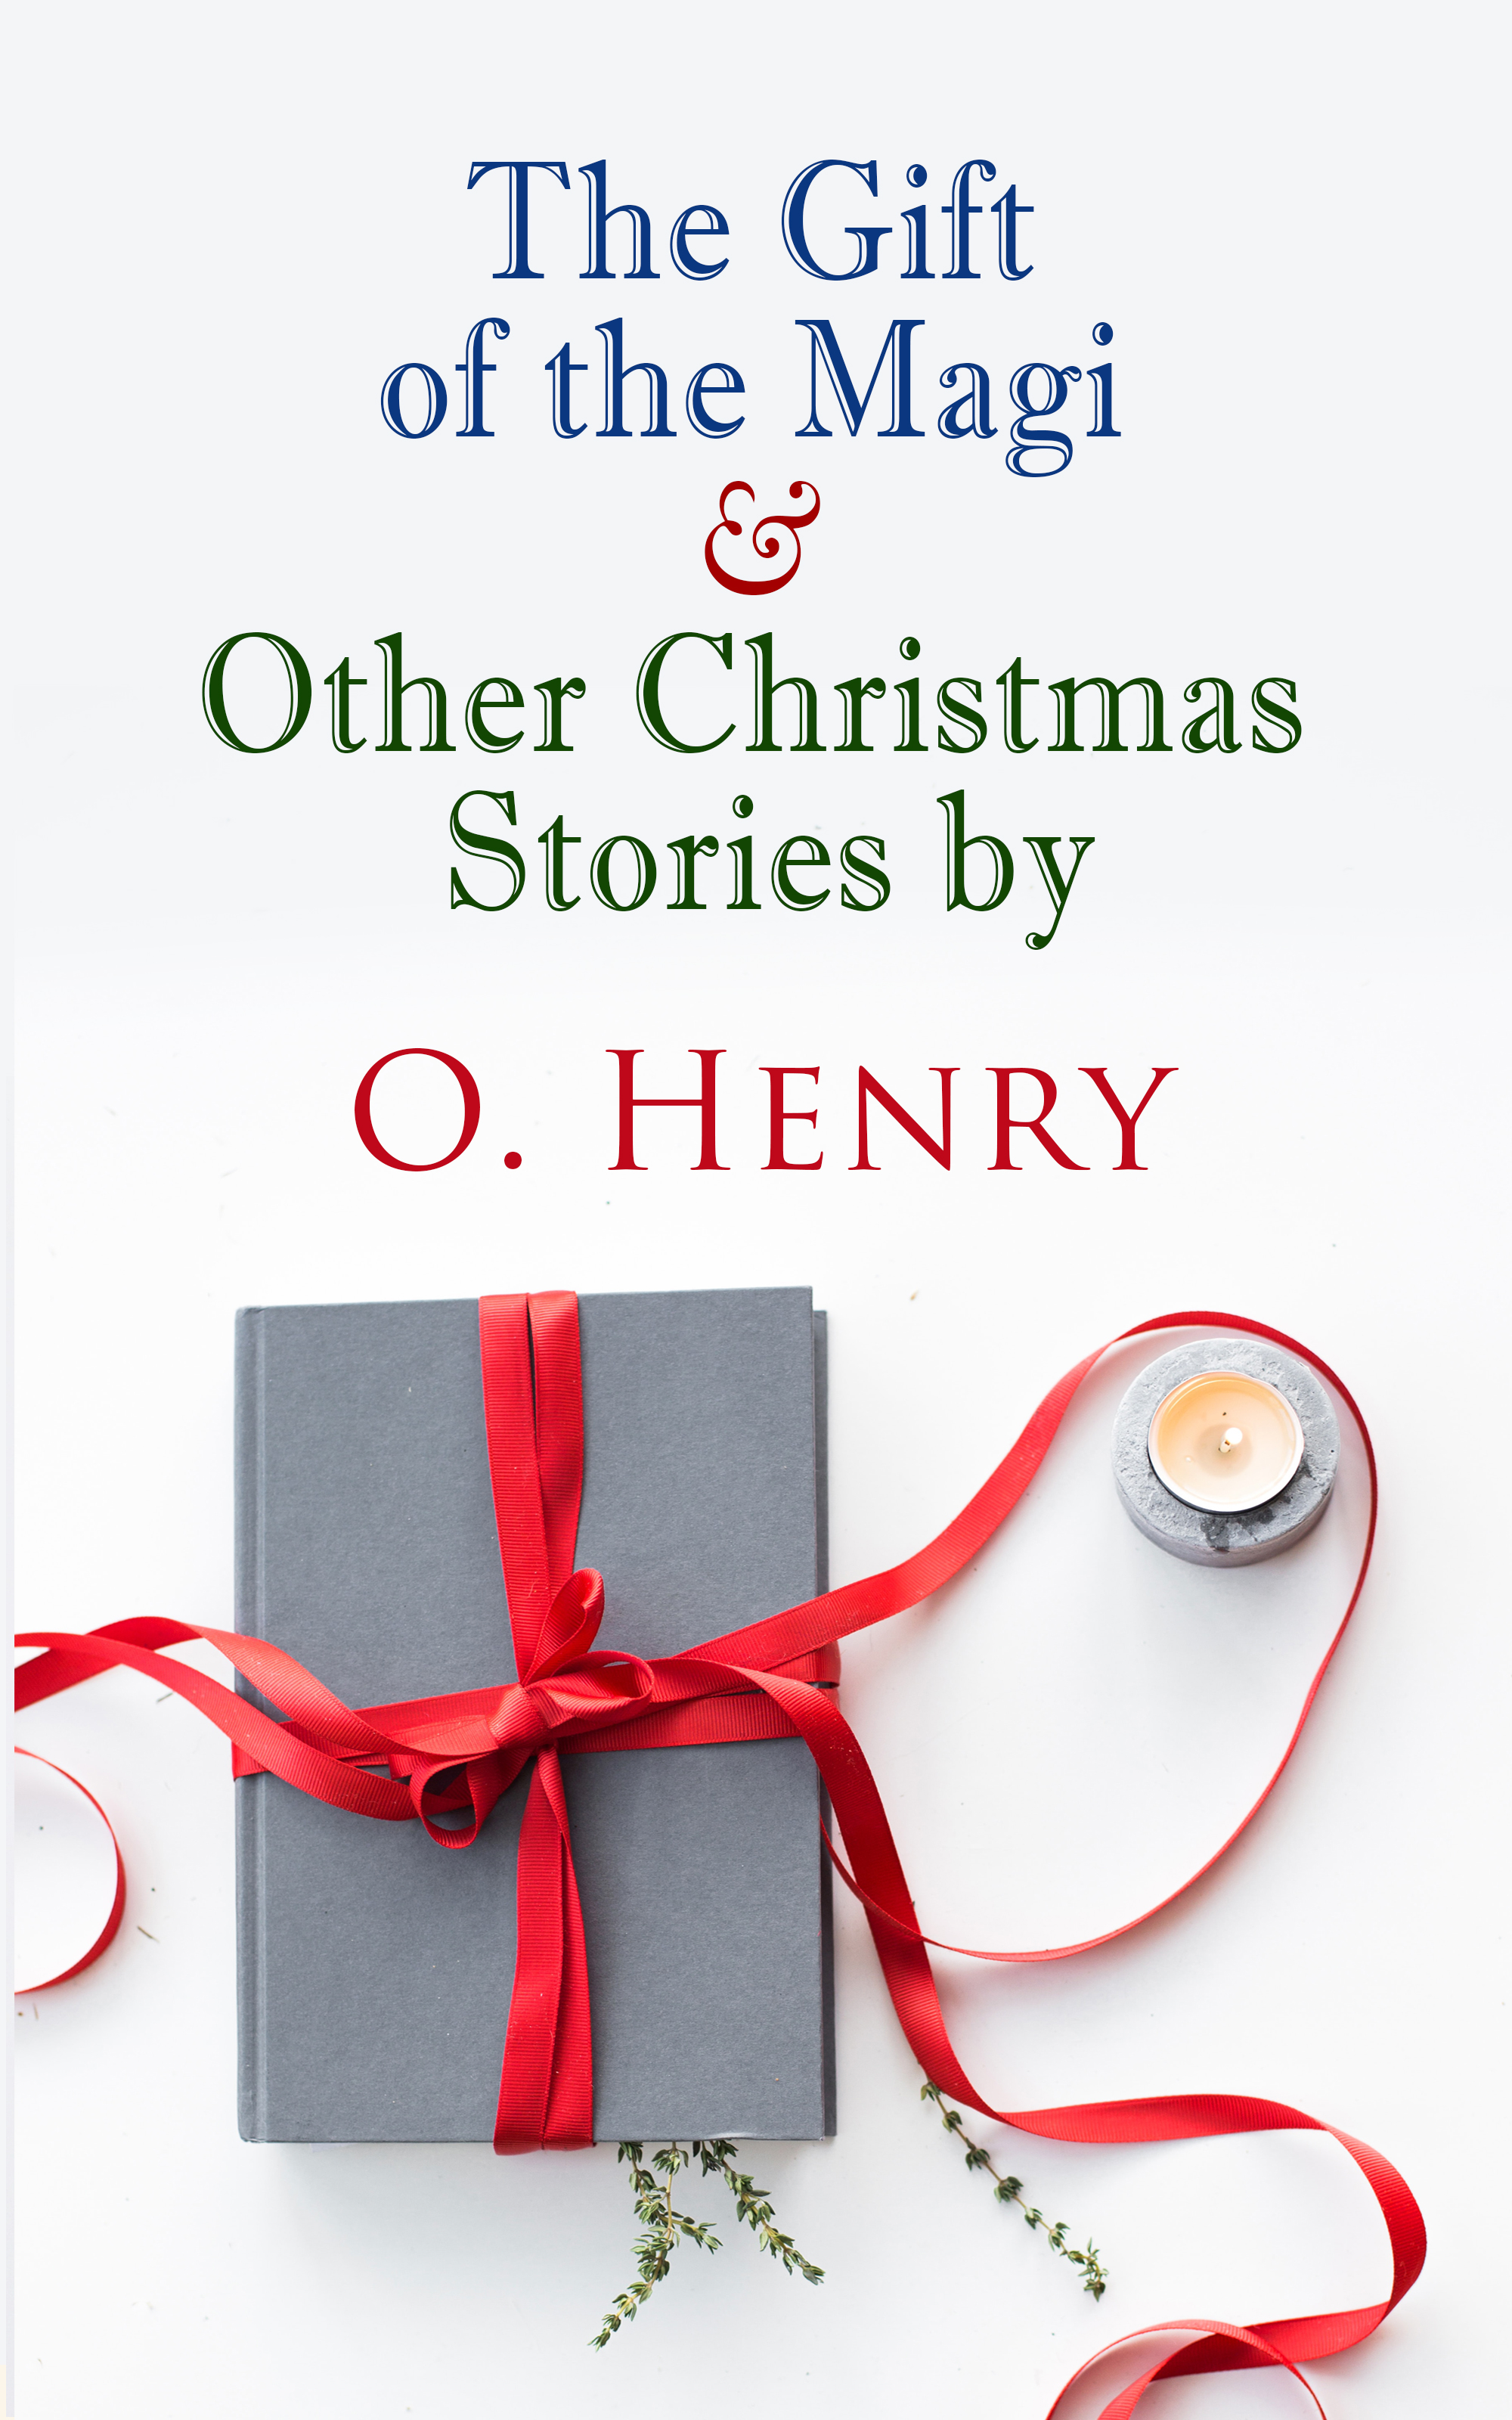 O. Henry The Gift of the Magi & Other Christmas Stories by O. Henry